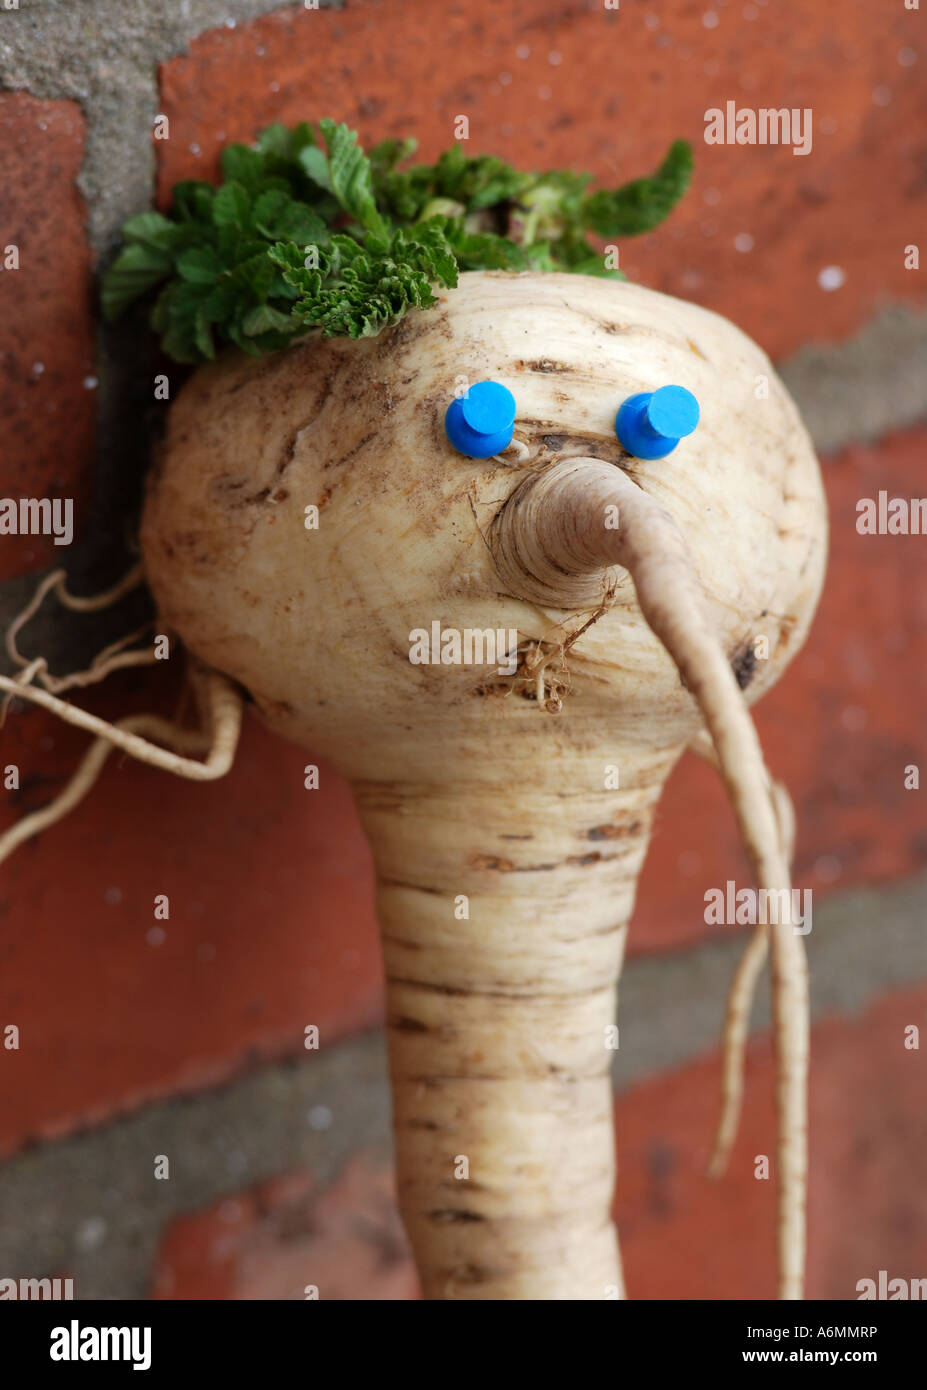 Parsnip with blue eyes - Stock Image